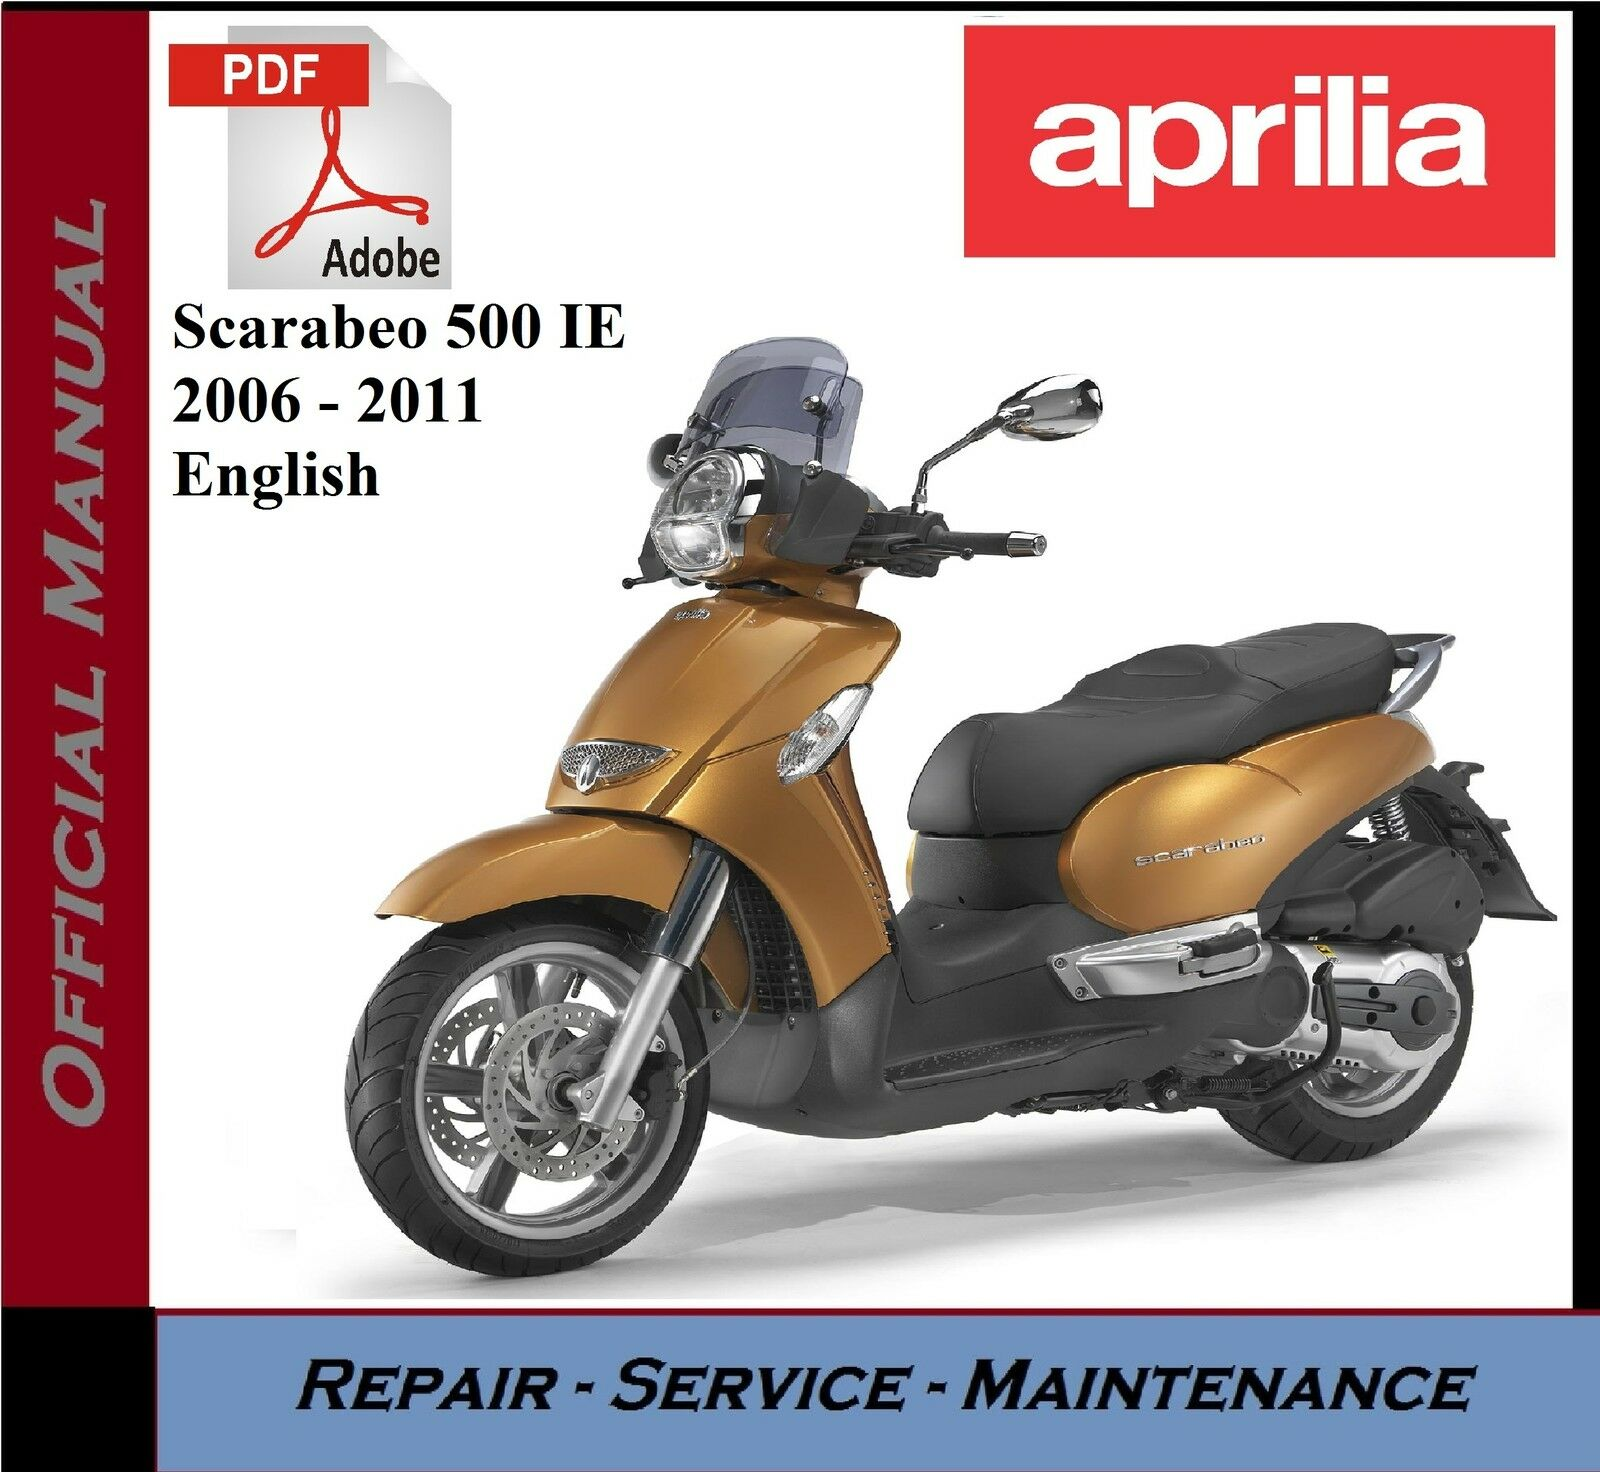 Aprilia Scarabeo 500 IE 2006 - 2011 Workshop Service Repair Manual Aprilia  Scarabeo 500 IE 2006 - 2011 Workshop Service Repair Manual 1 of 1 See More